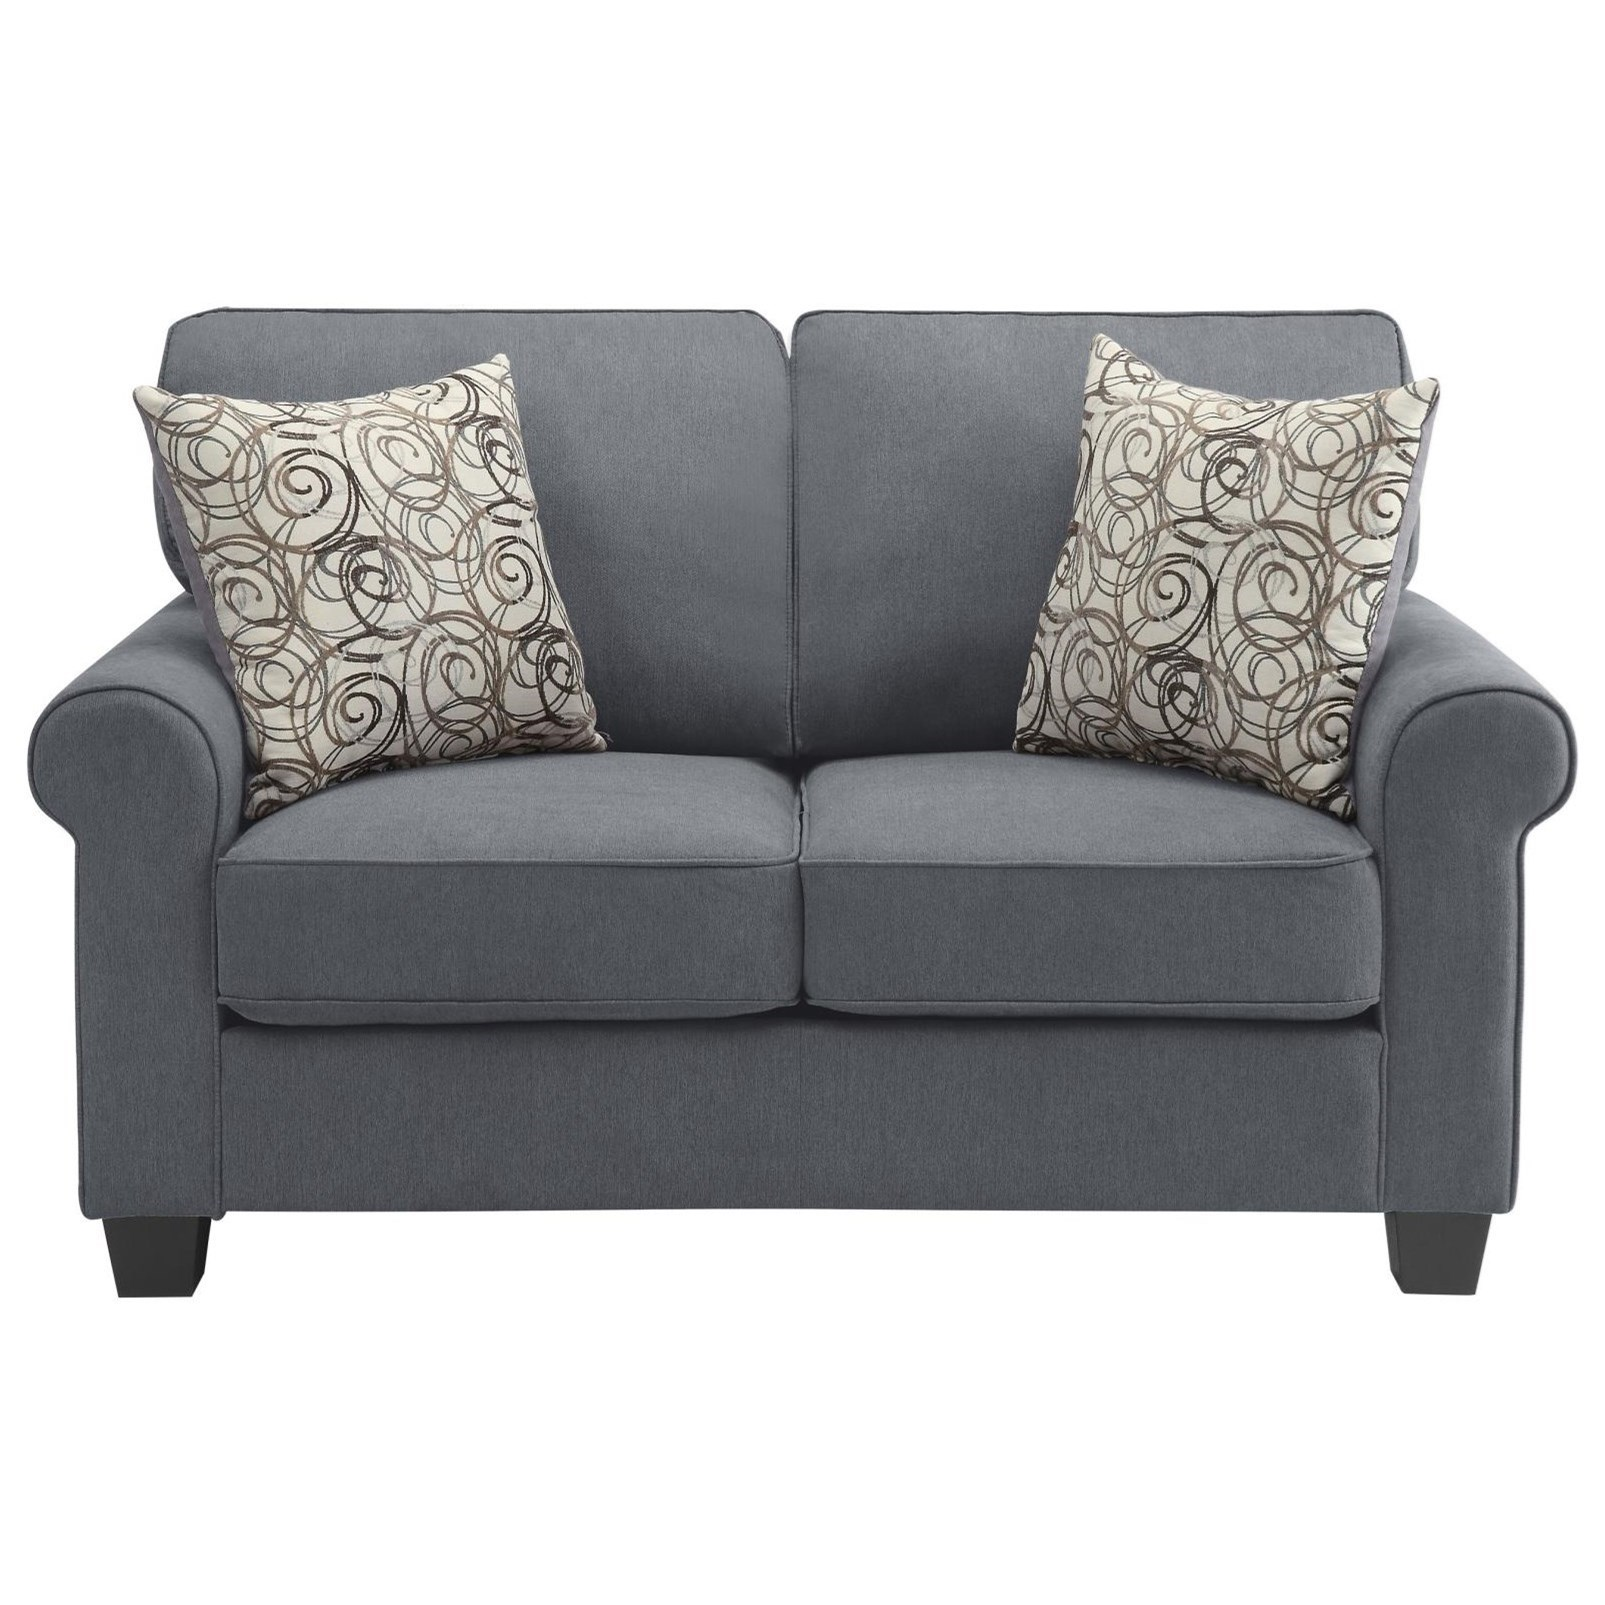 Selkirk Love Seat by Homelegance at Simply Home by Lindy's